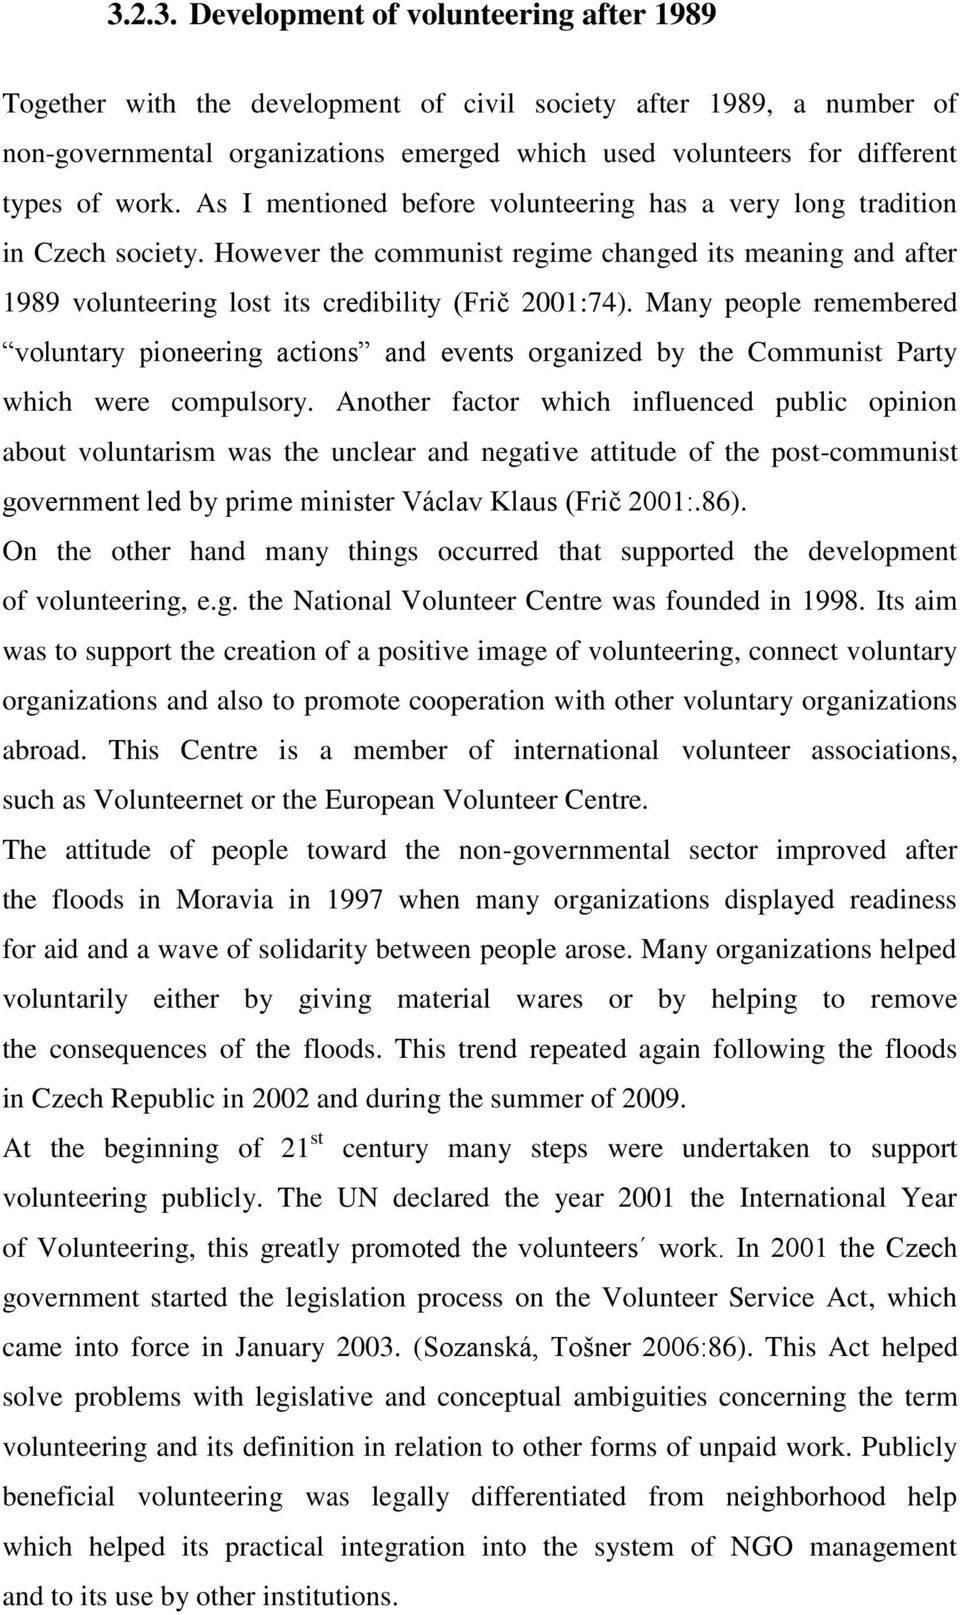 However the communist regime changed its meaning and after 1989 volunteering lost its credibility (Frič 2001:74).